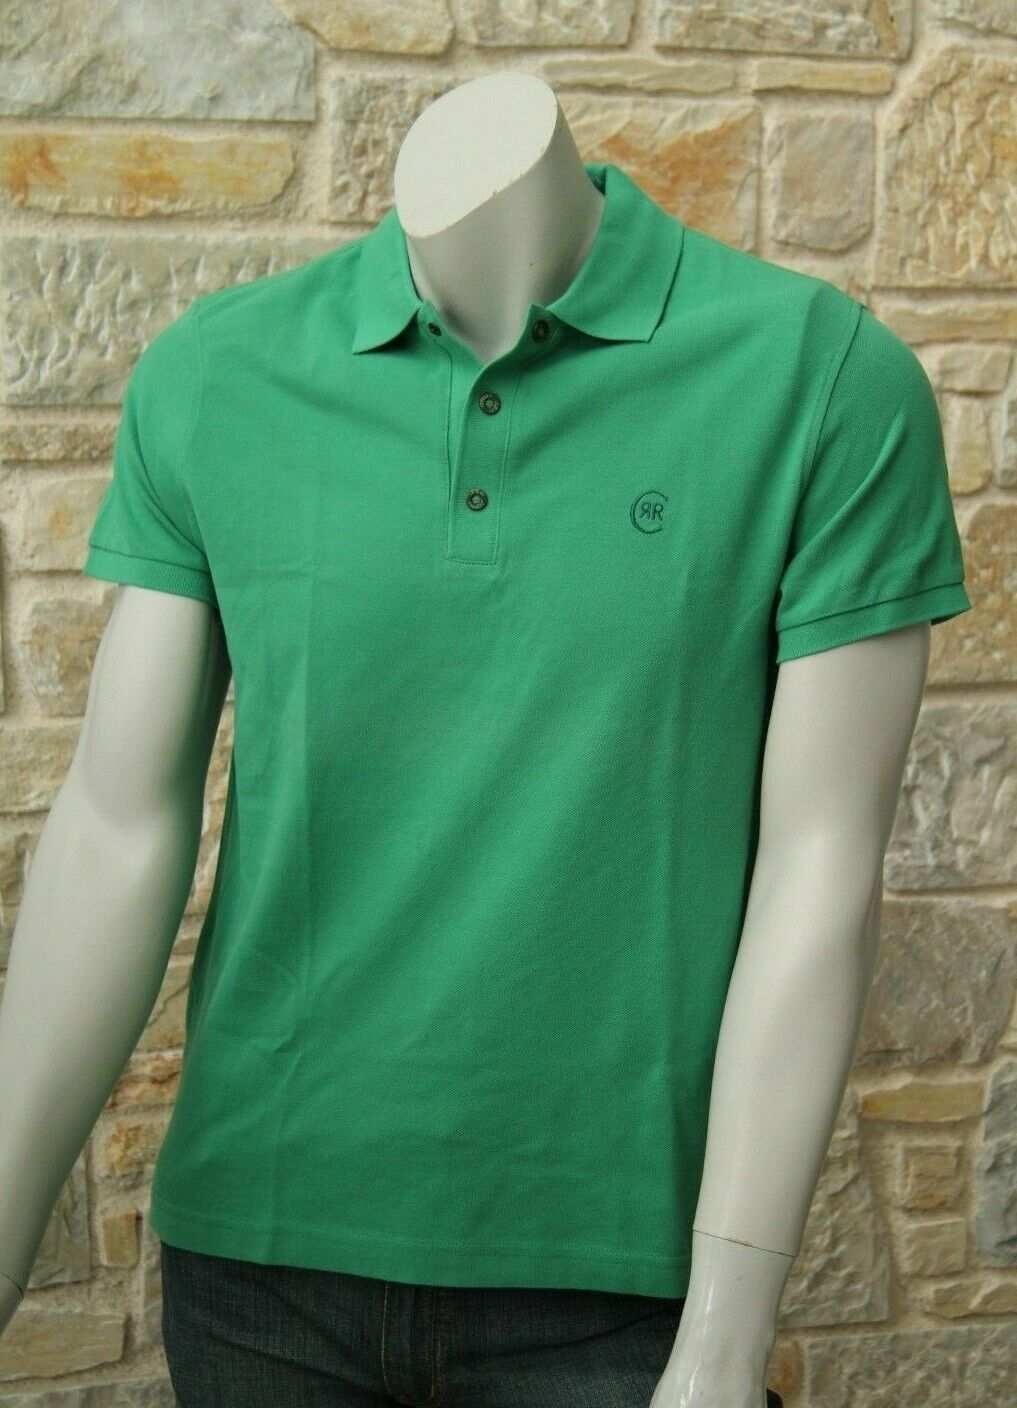 CERRUTI 1881 Men's 100% Cotton Green Polo T-Shirt Free Shipping New with Tags